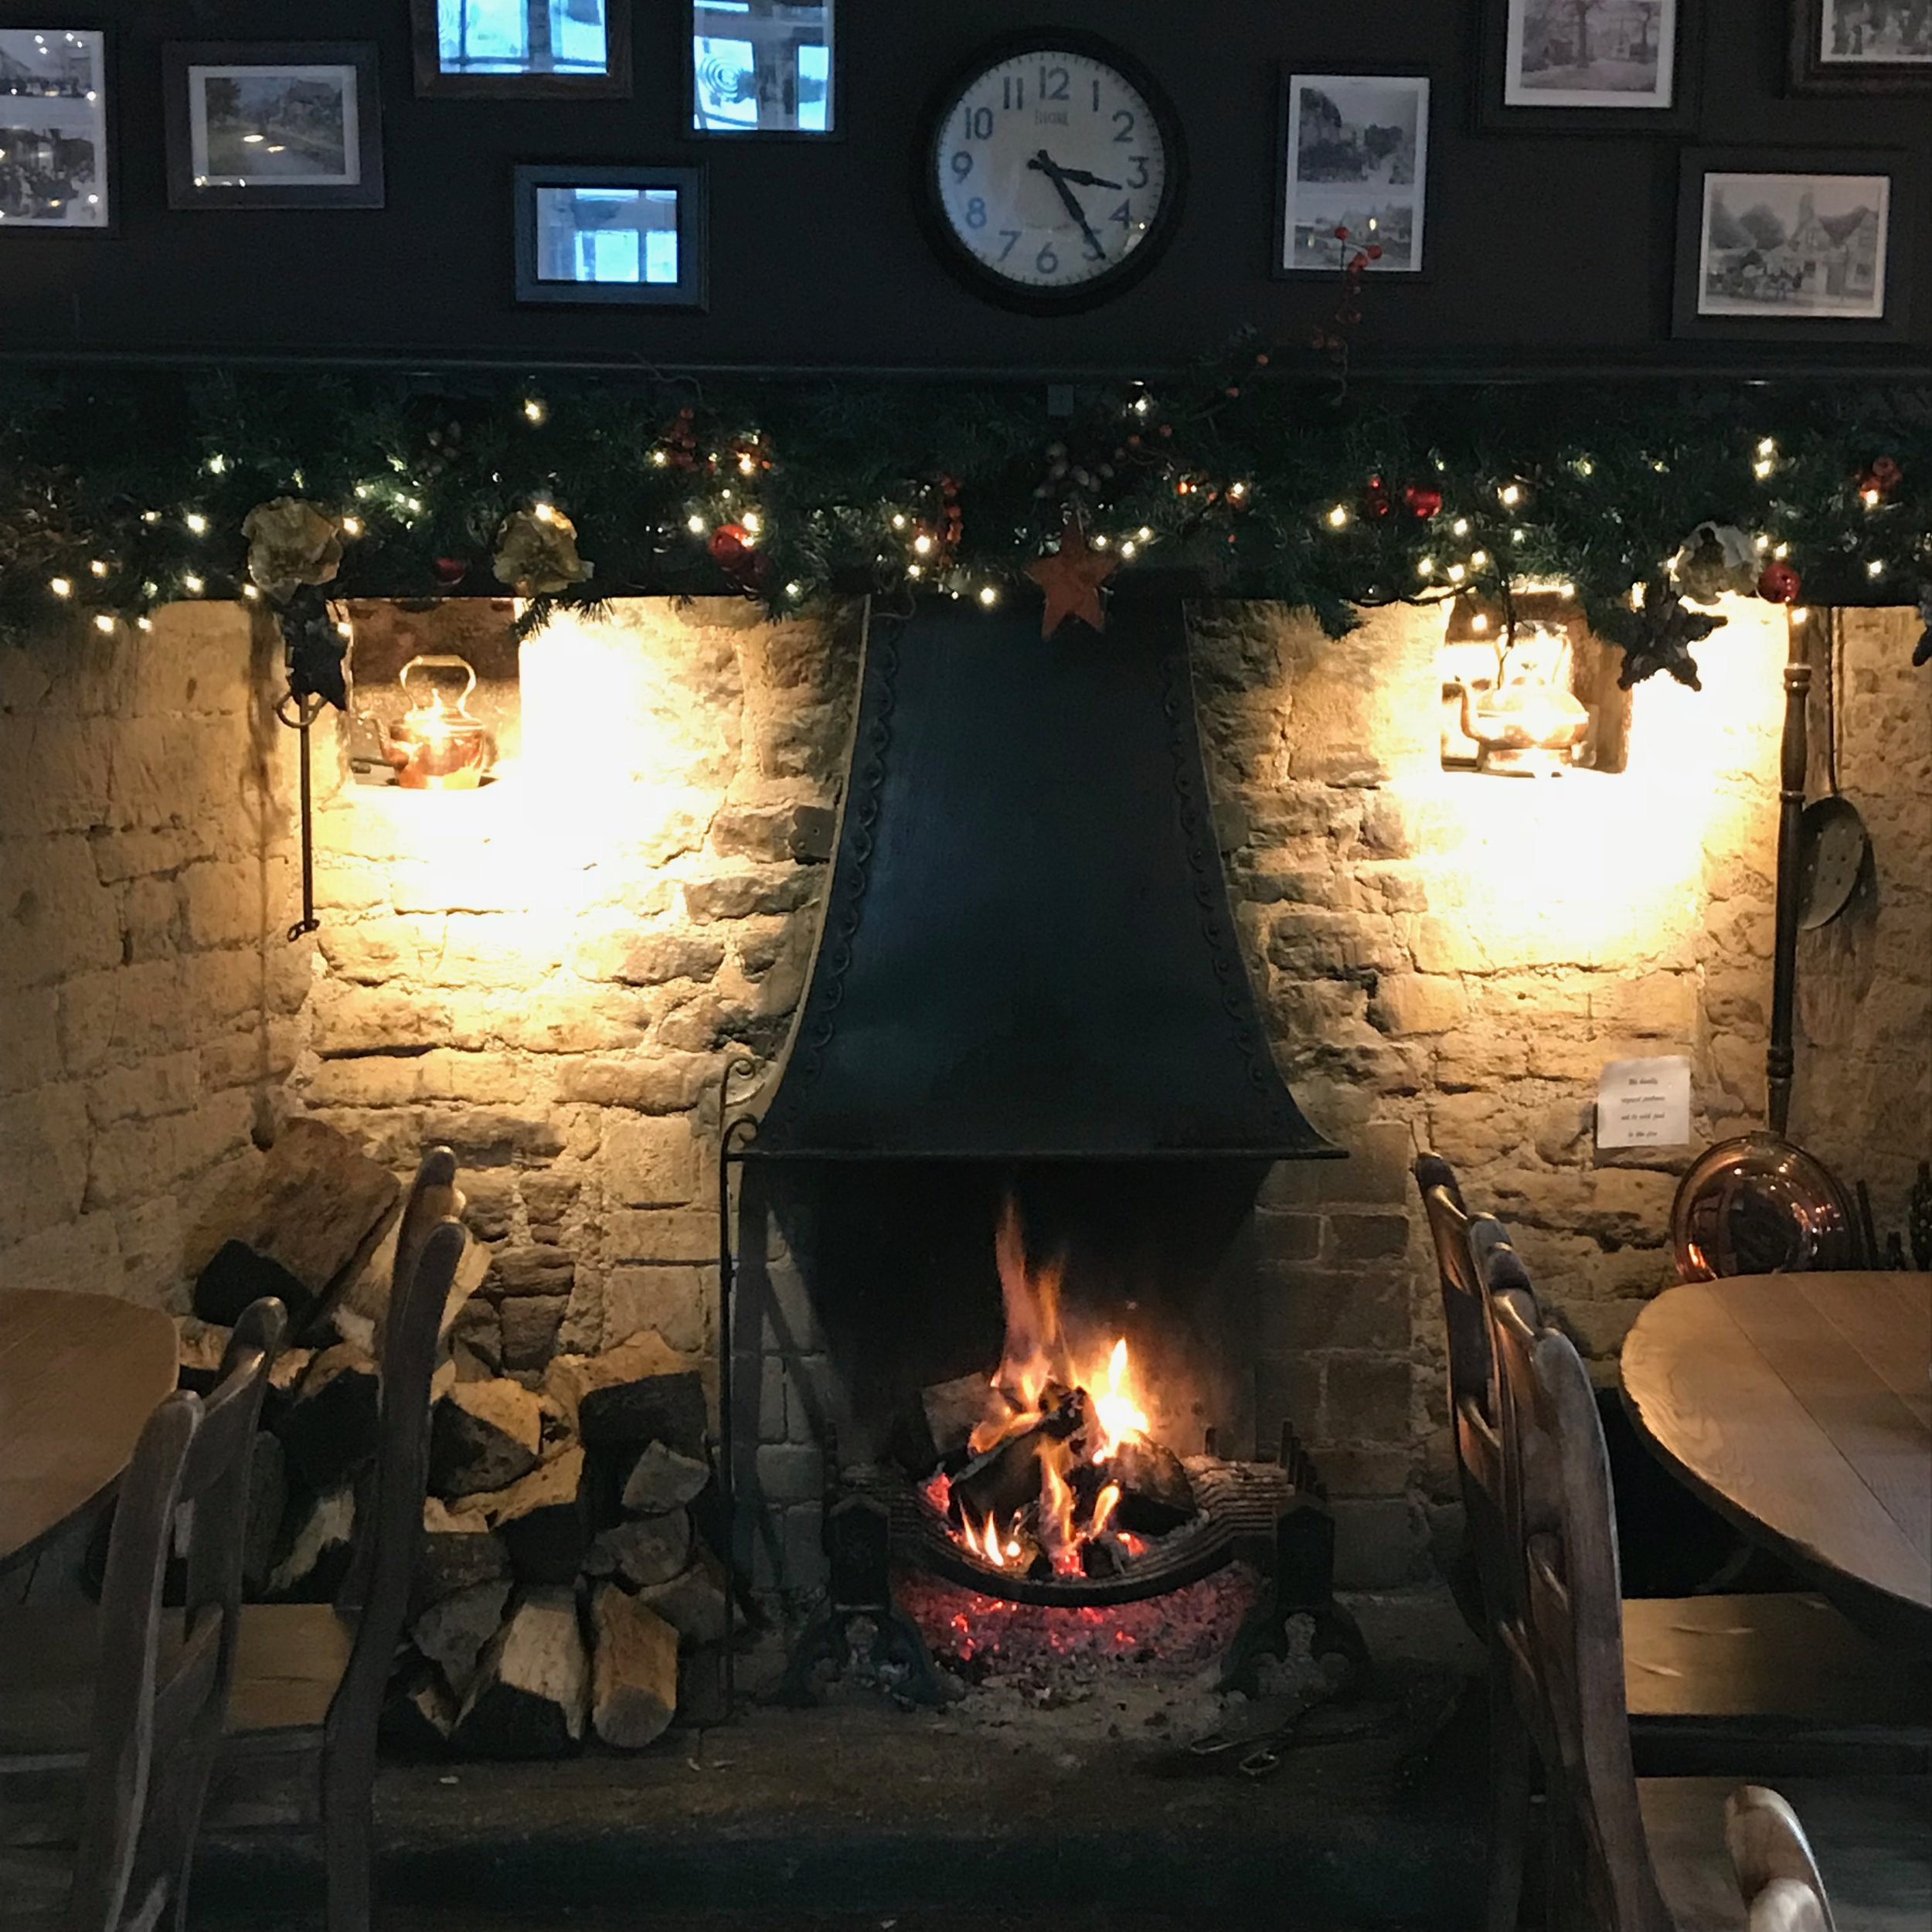 The open fire roaring at The Ebrington Arms